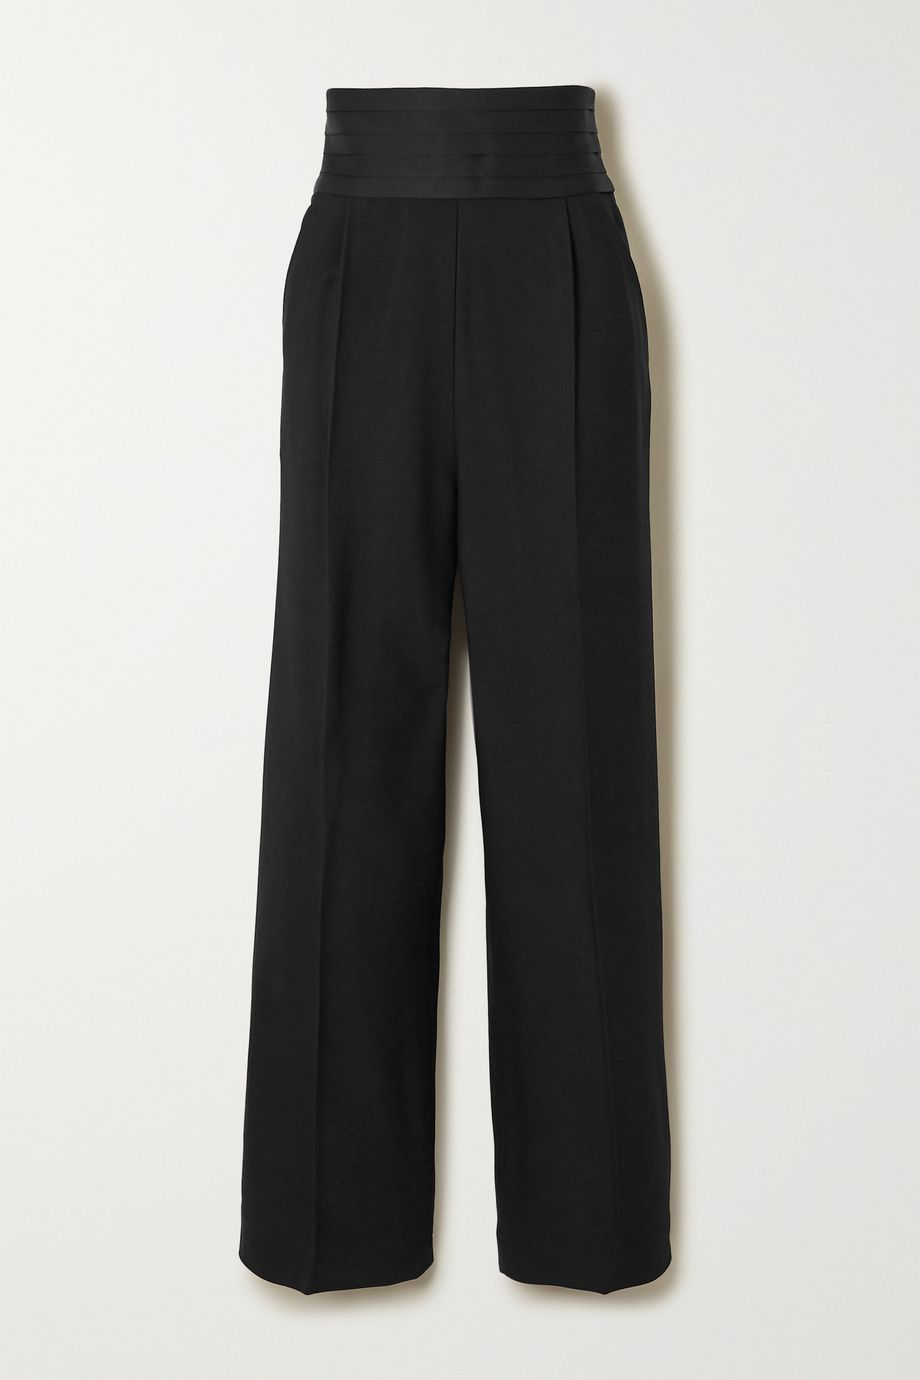 Khaite Blaine stretch-crepe wide-leg pants